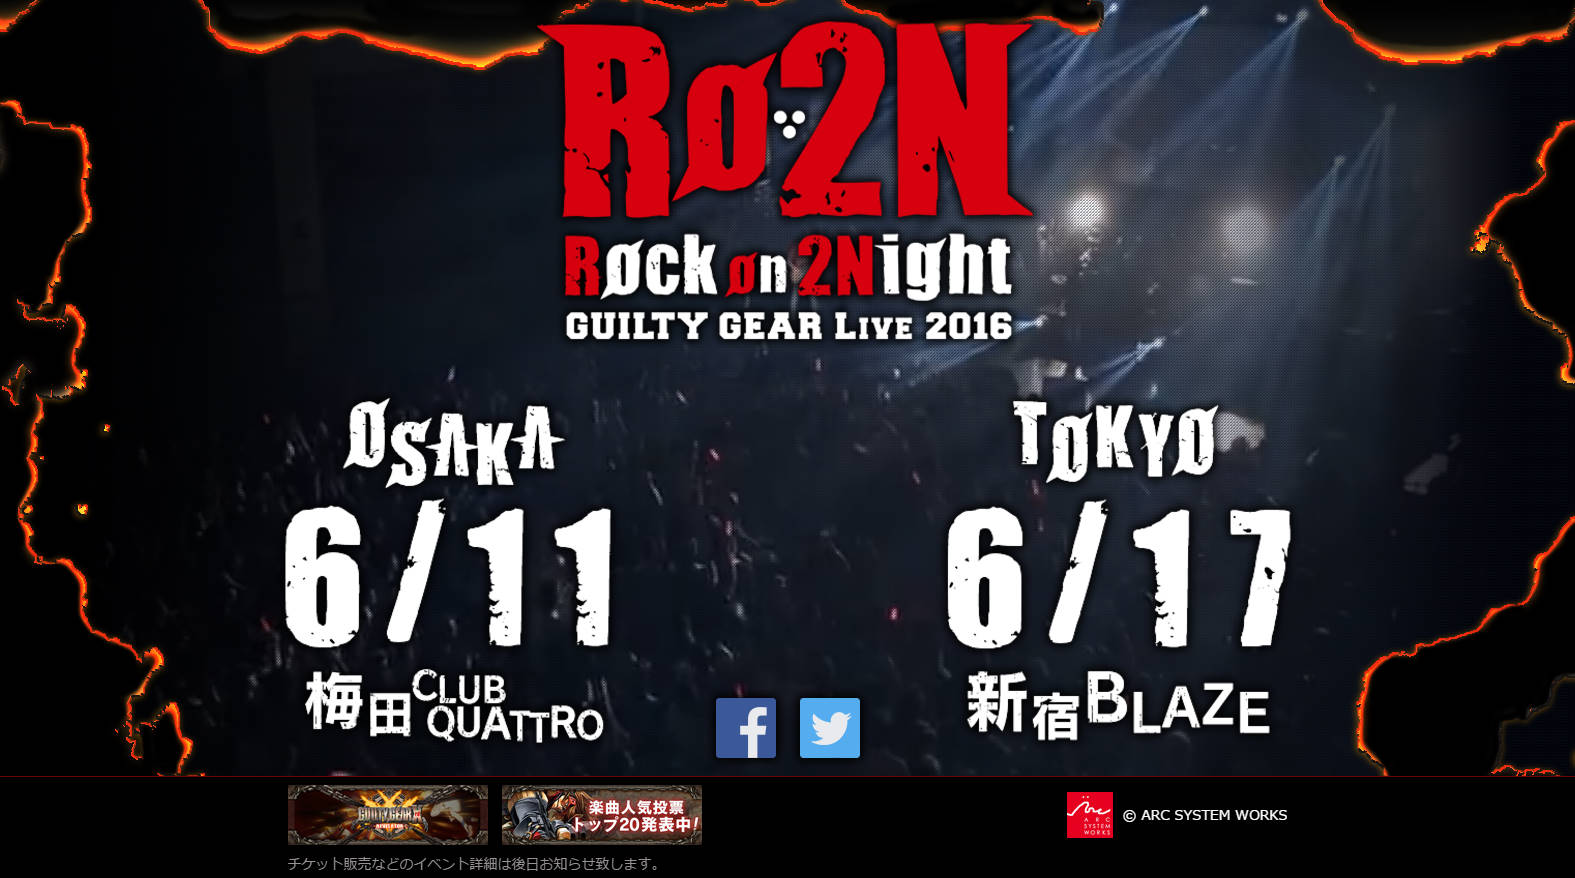 Rock on 2Night GUILTY GEAR LIVE 2016 ティザーSS